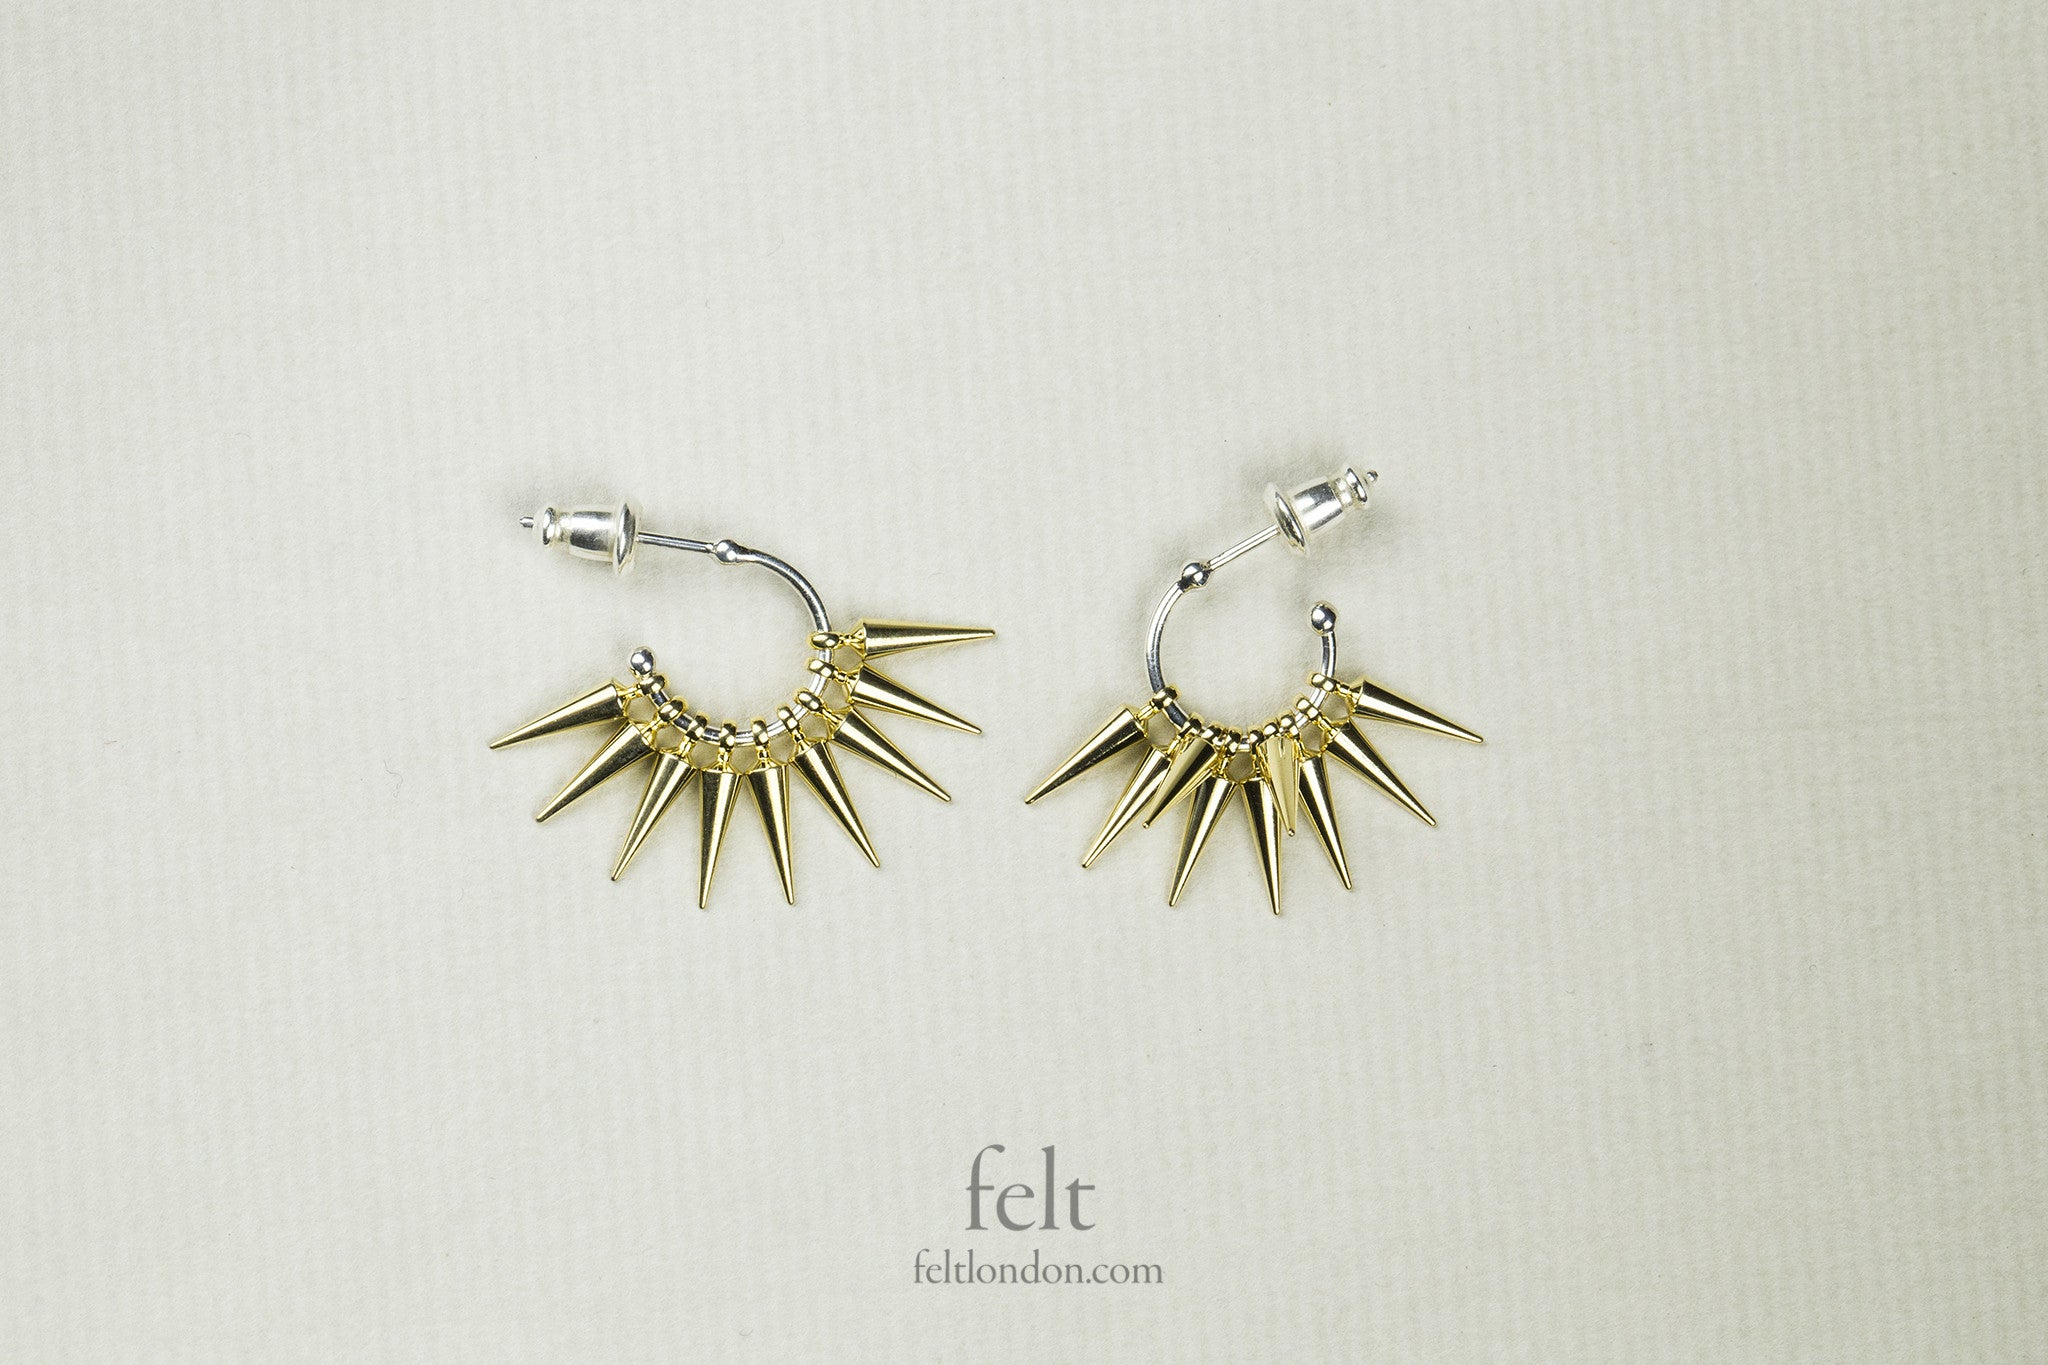 fantastic loose spikes are centre piece of these playful earrings